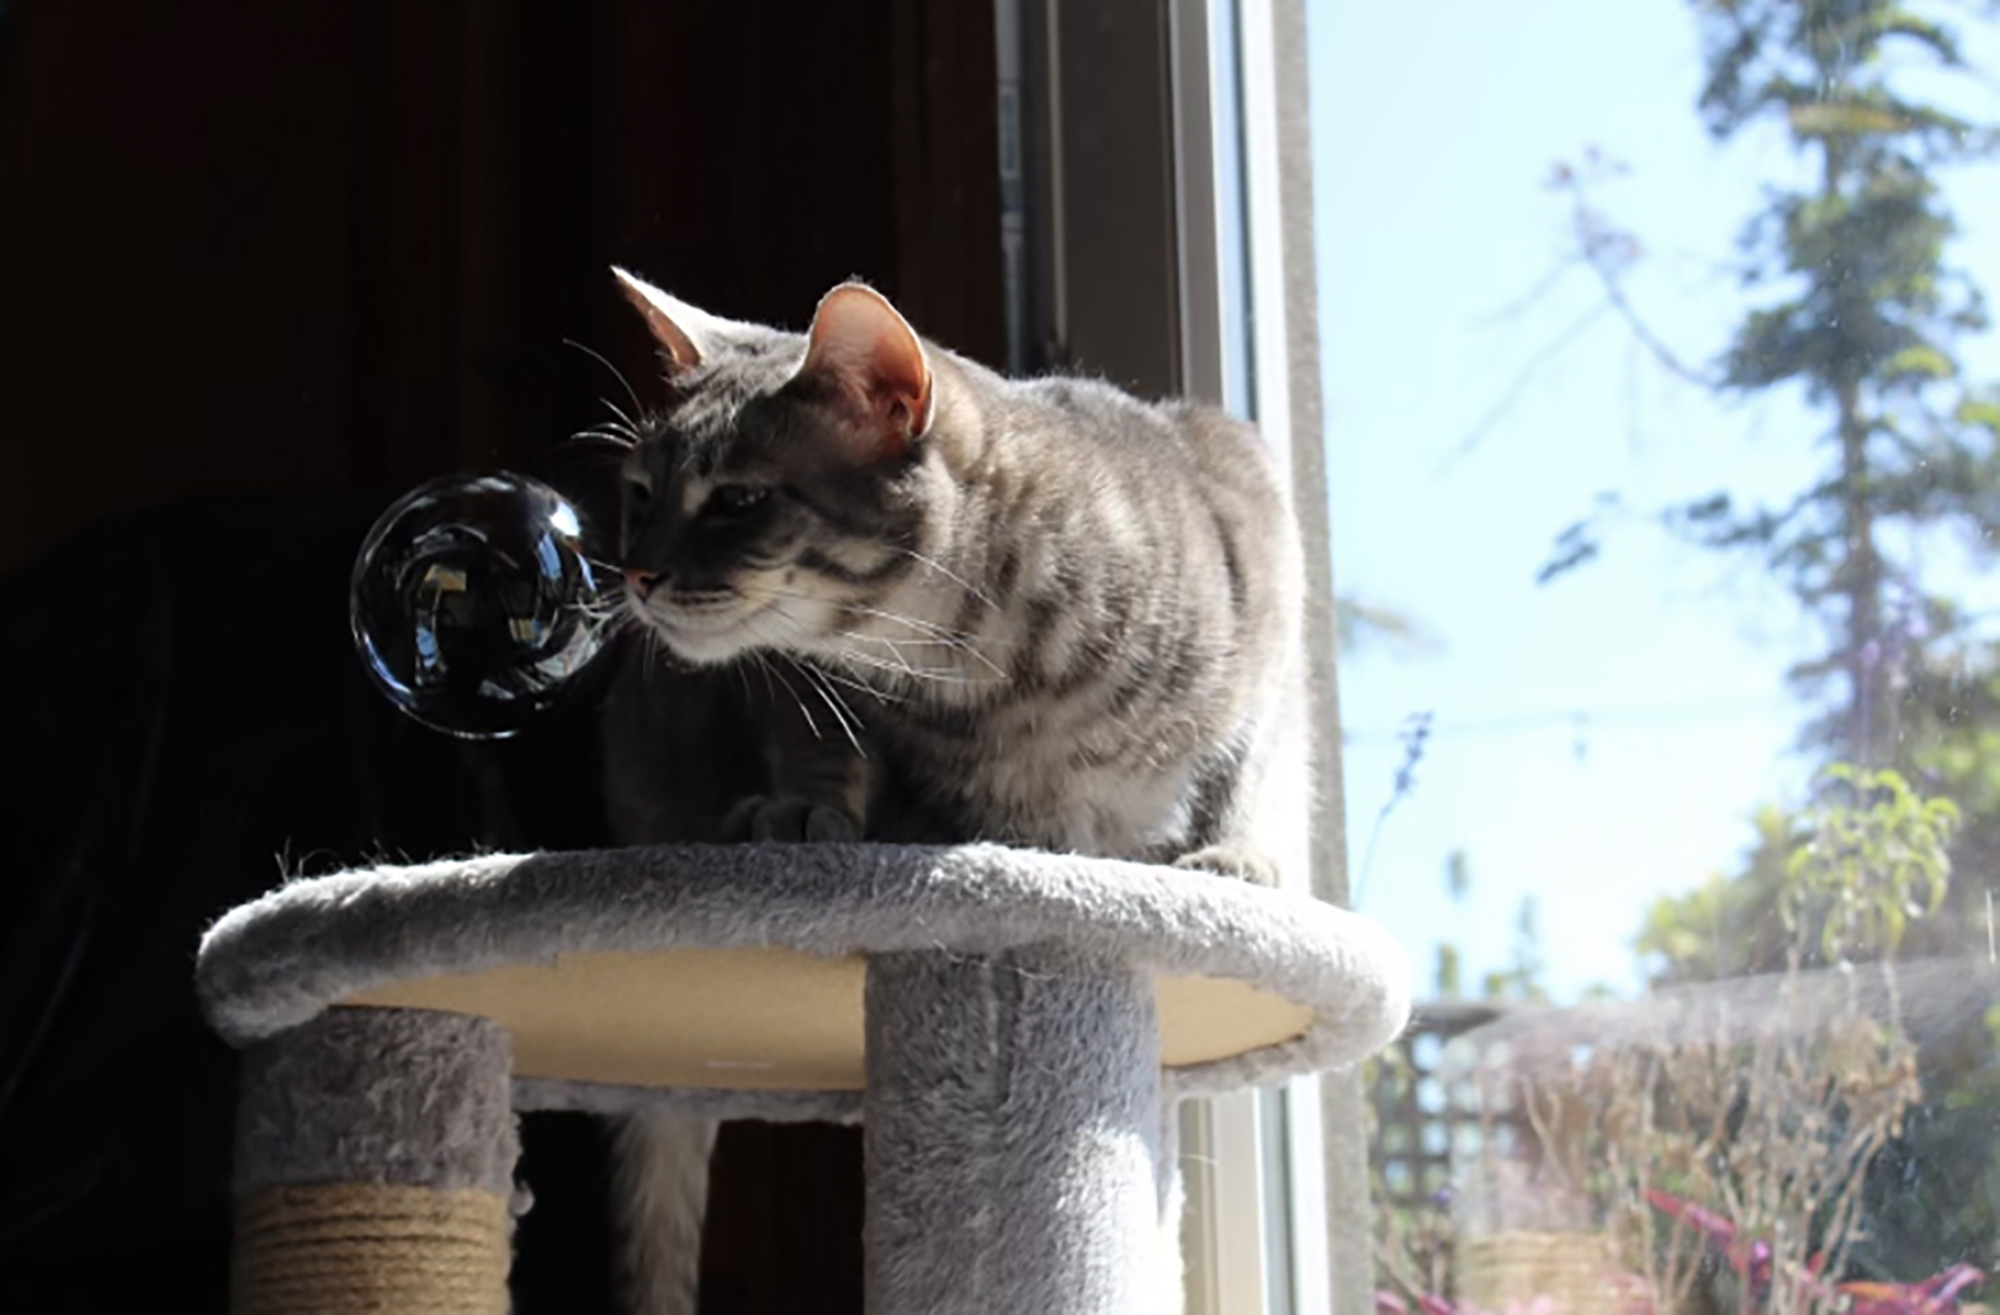 2nd. Callie June, cat with a bubble